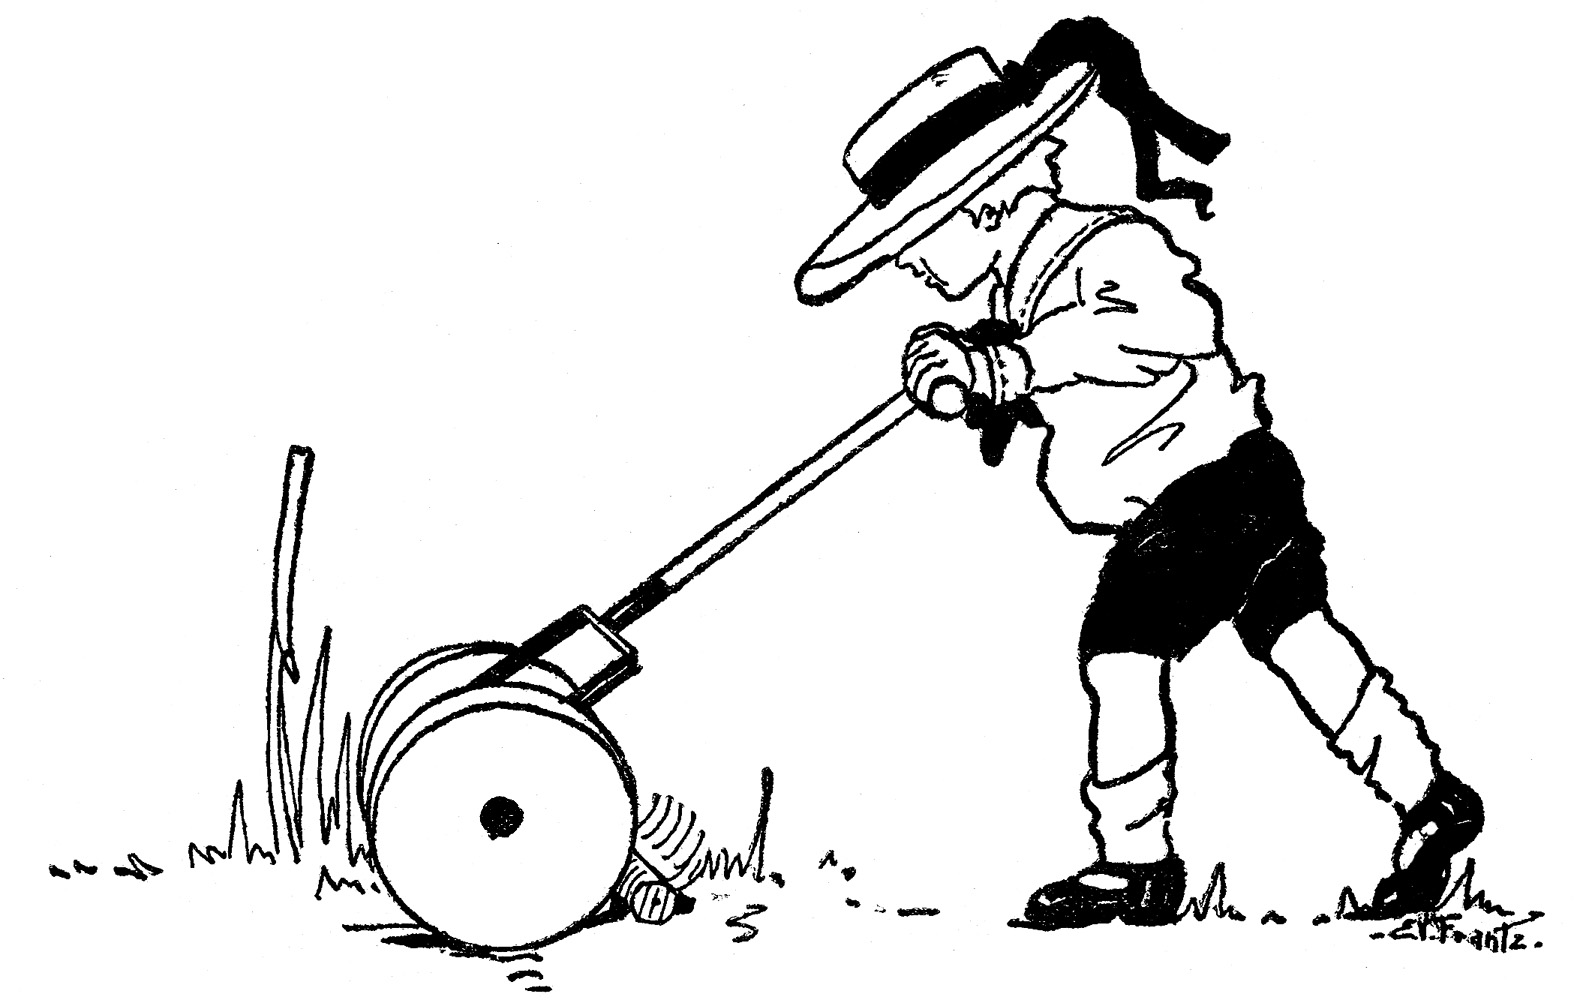 Boy pushing another boy clipart black and white image royalty free library Vintage Summer Clip Art - Boy with Lawn Mower - The Graphics Fairy image royalty free library